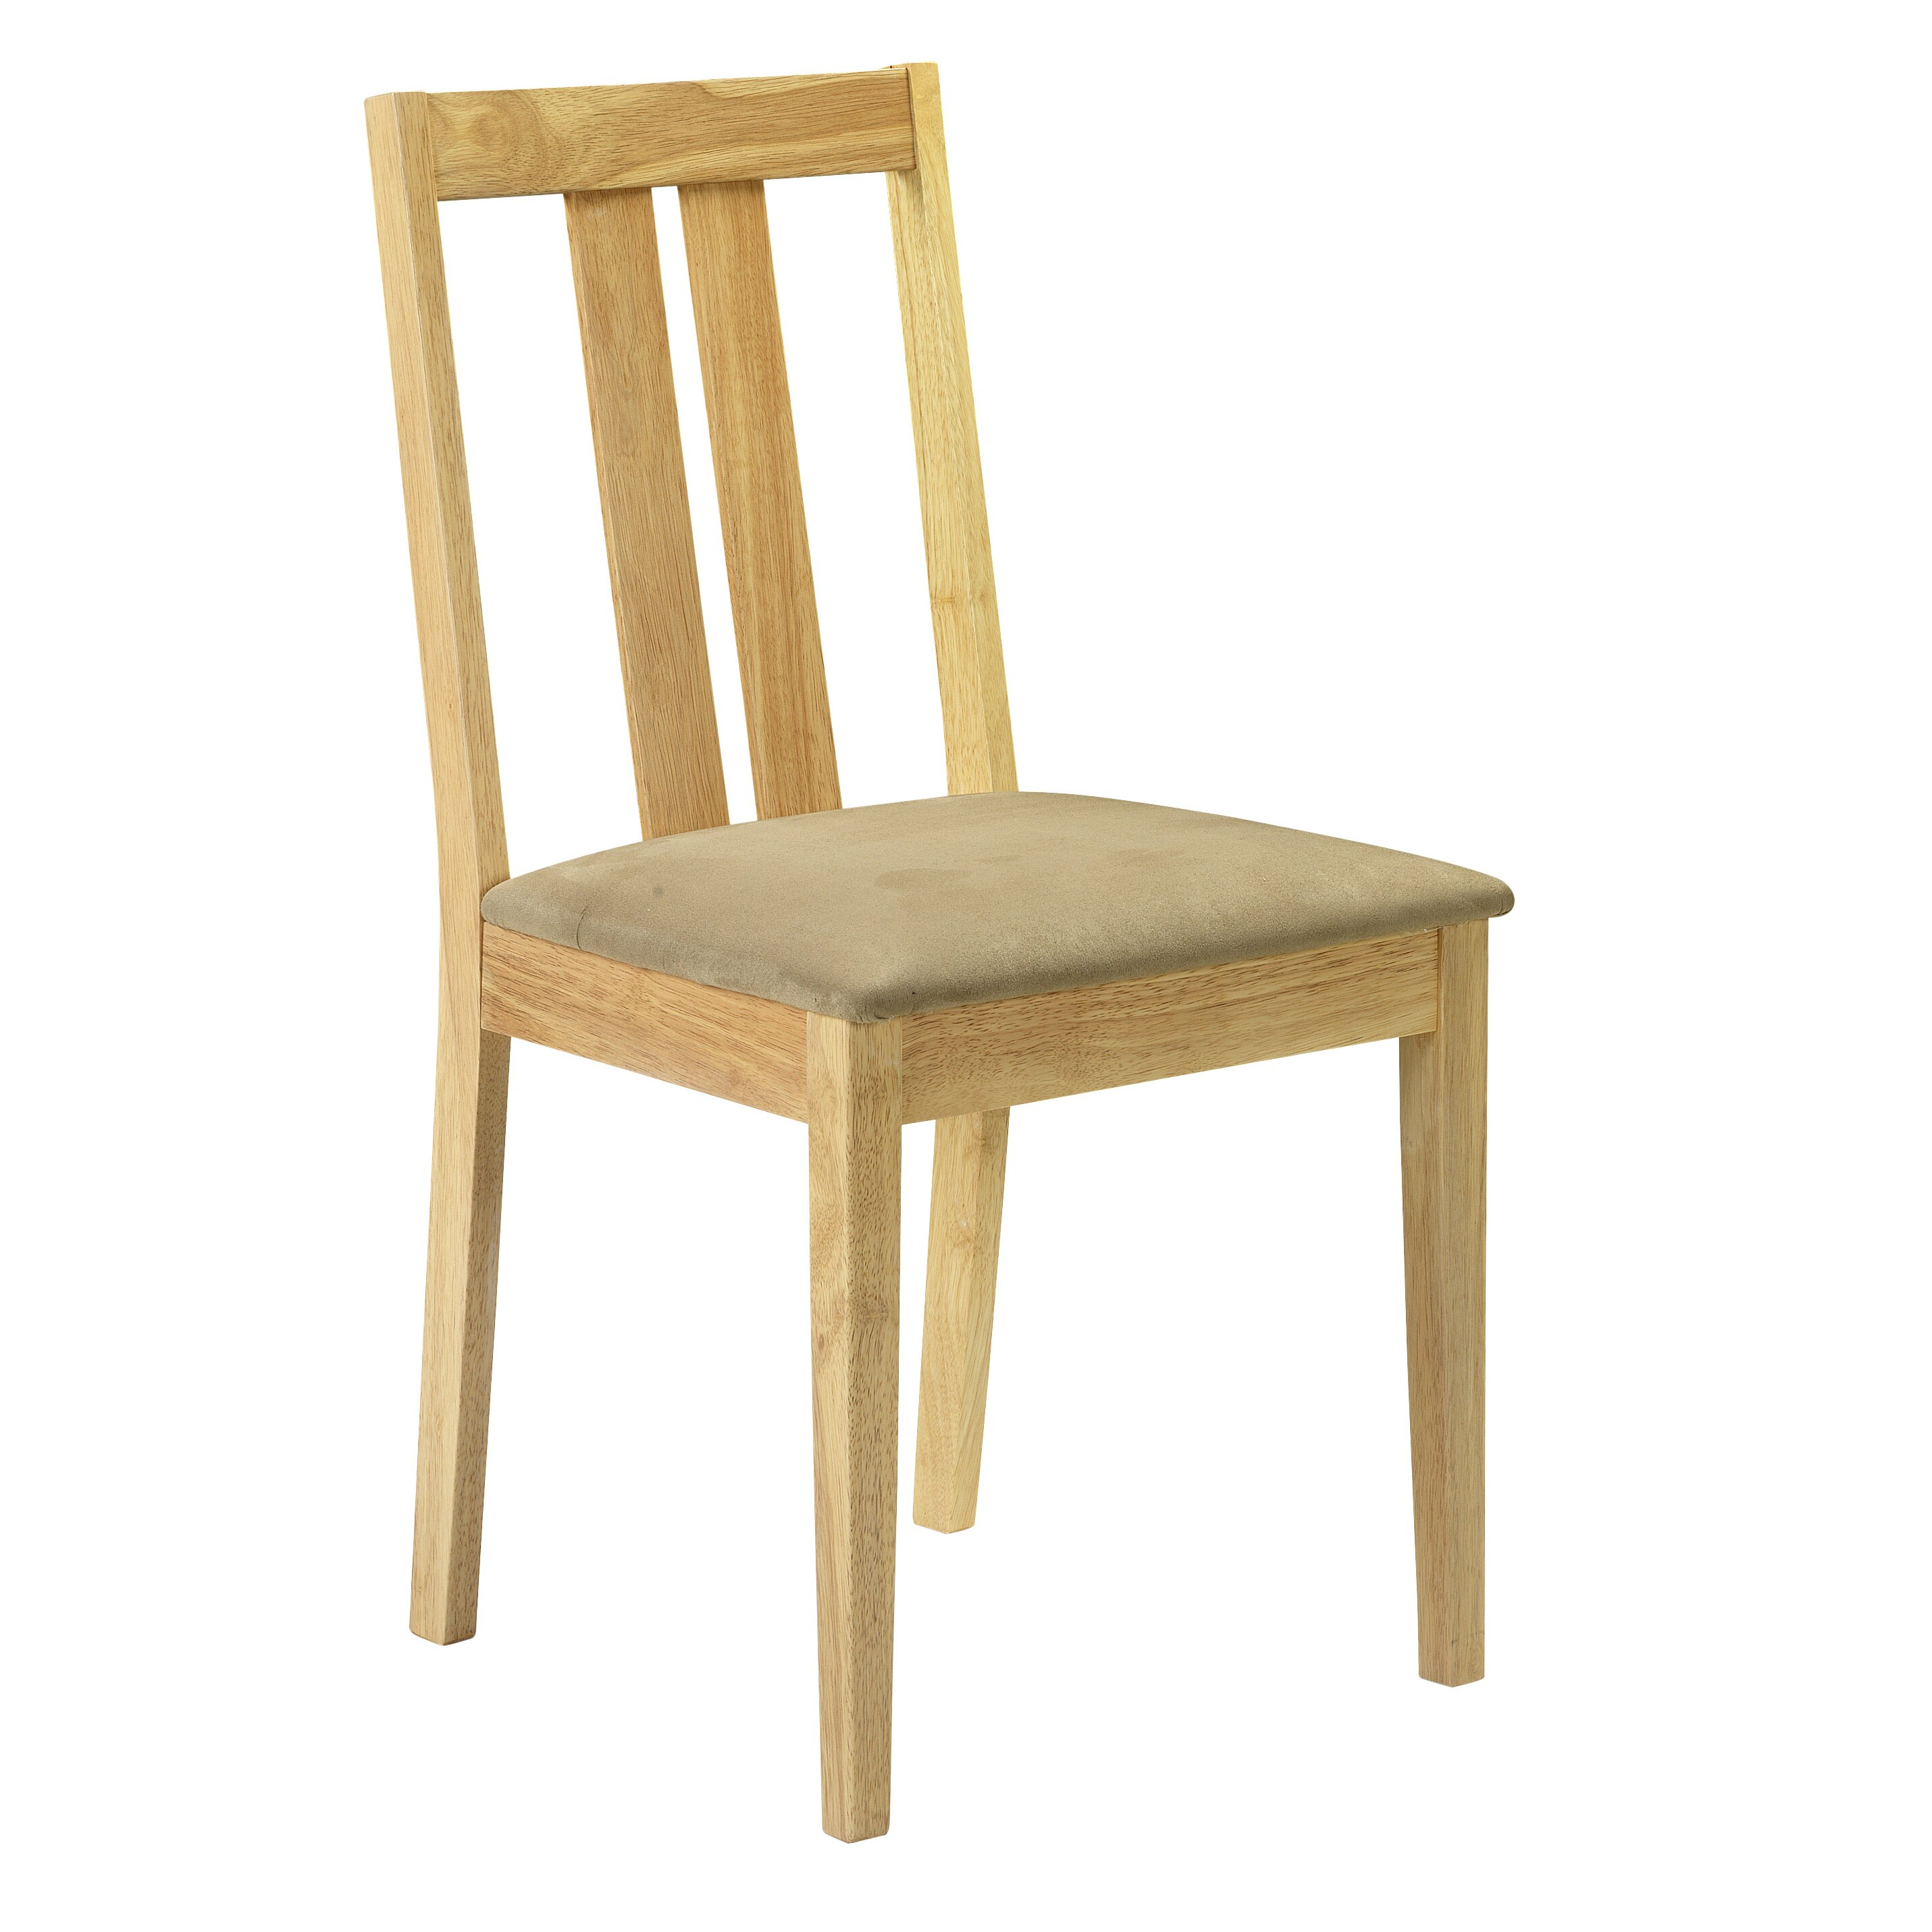 Wonderful image of  Sherwood Solid Wood Upholstered Dining Chair & Reviews Wayfair UK with #7A511F color and 2861x2861 pixels